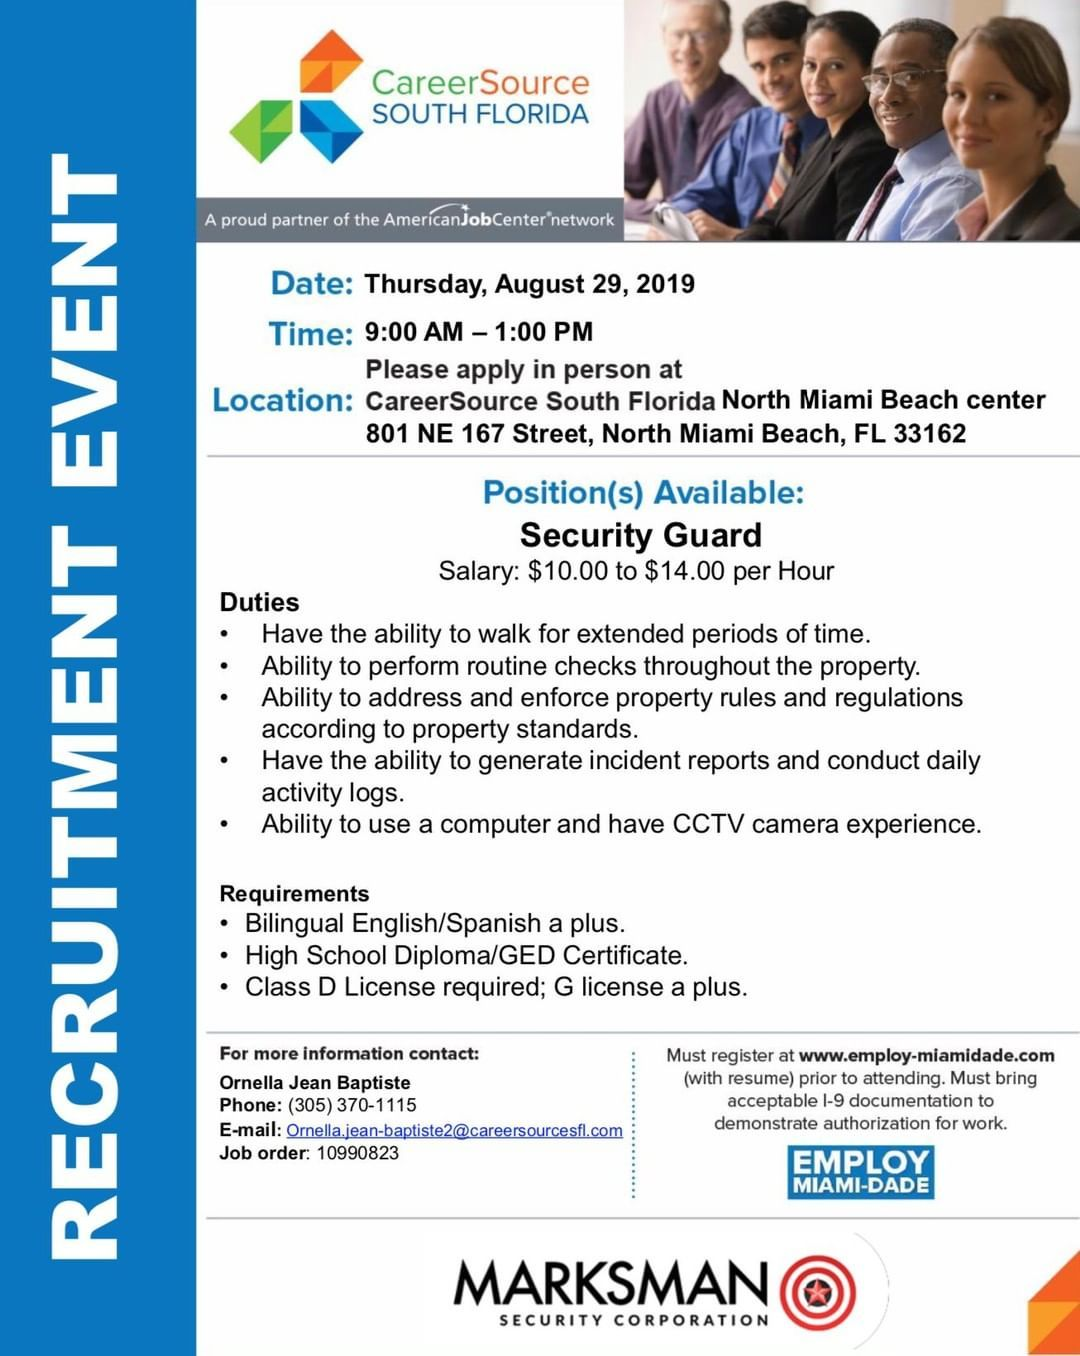 Marksman Security Corp Is Hiring Security Guards Please Apply In Person On Thursday August 29th At Our North Mia North Miami Beach Miami Beach Fl Miami Beach